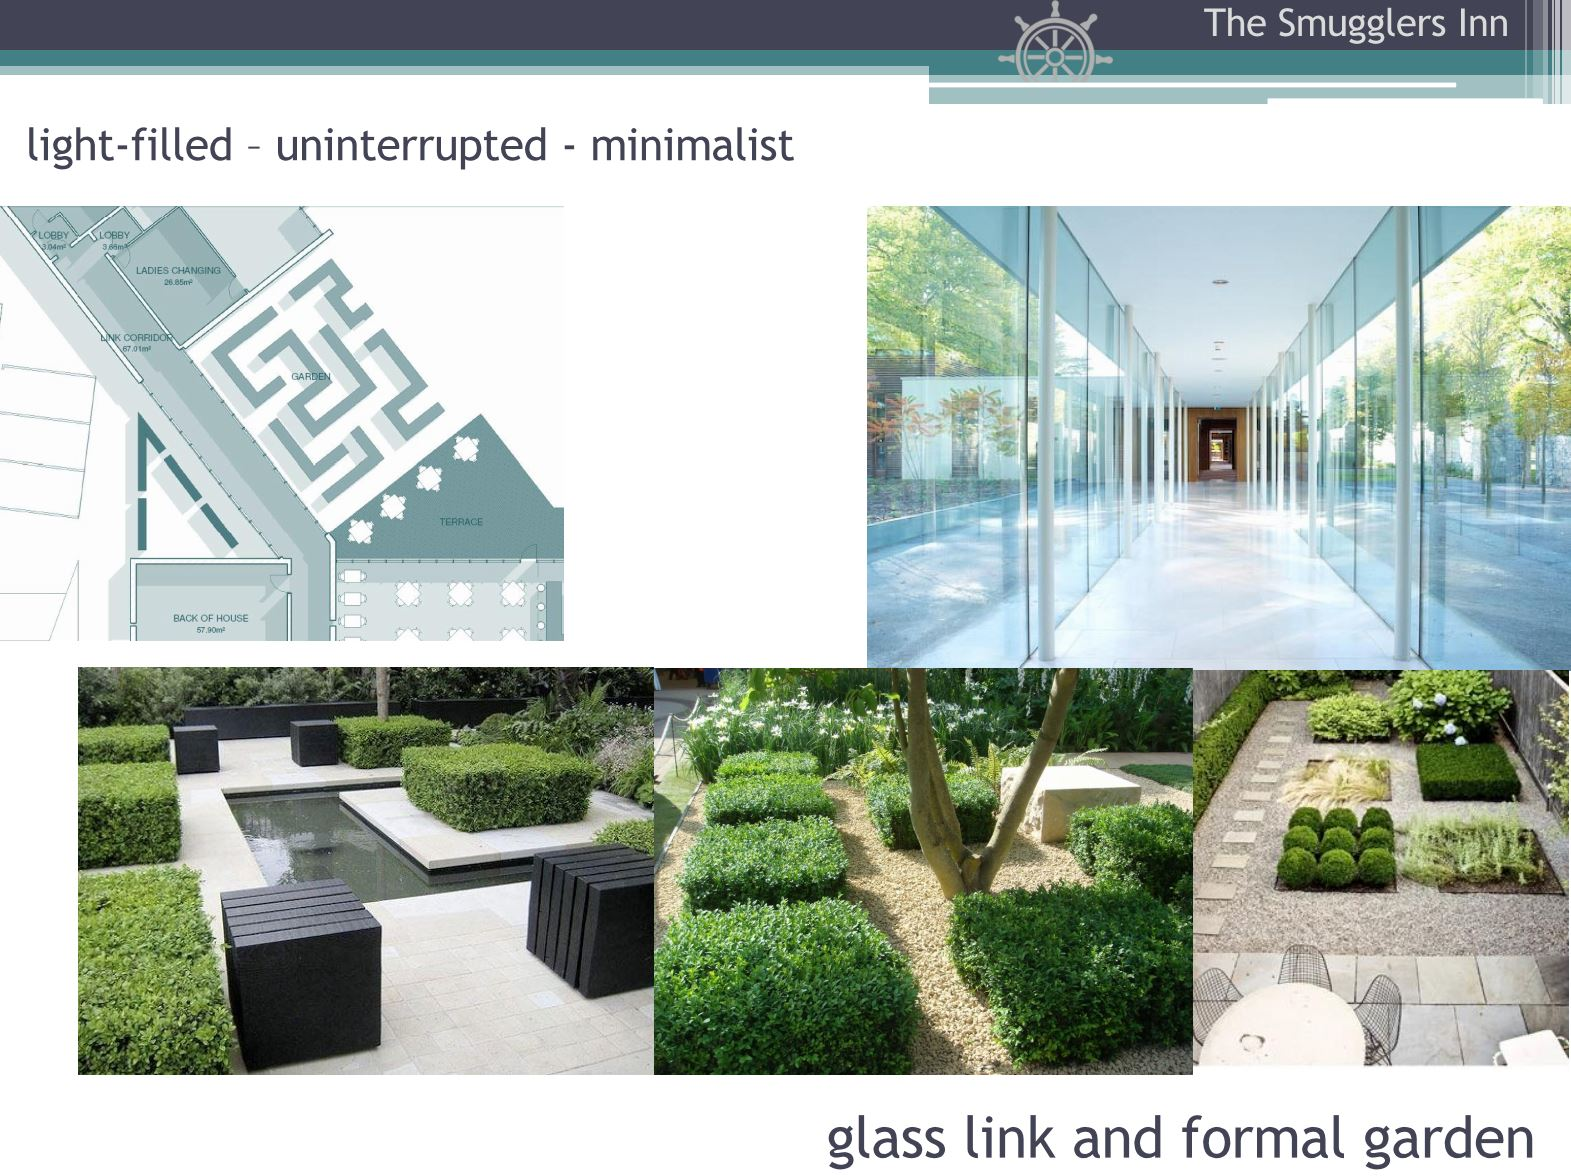 Hotel Fitout-Smugglers Inn-Mood Board-Formal Garden